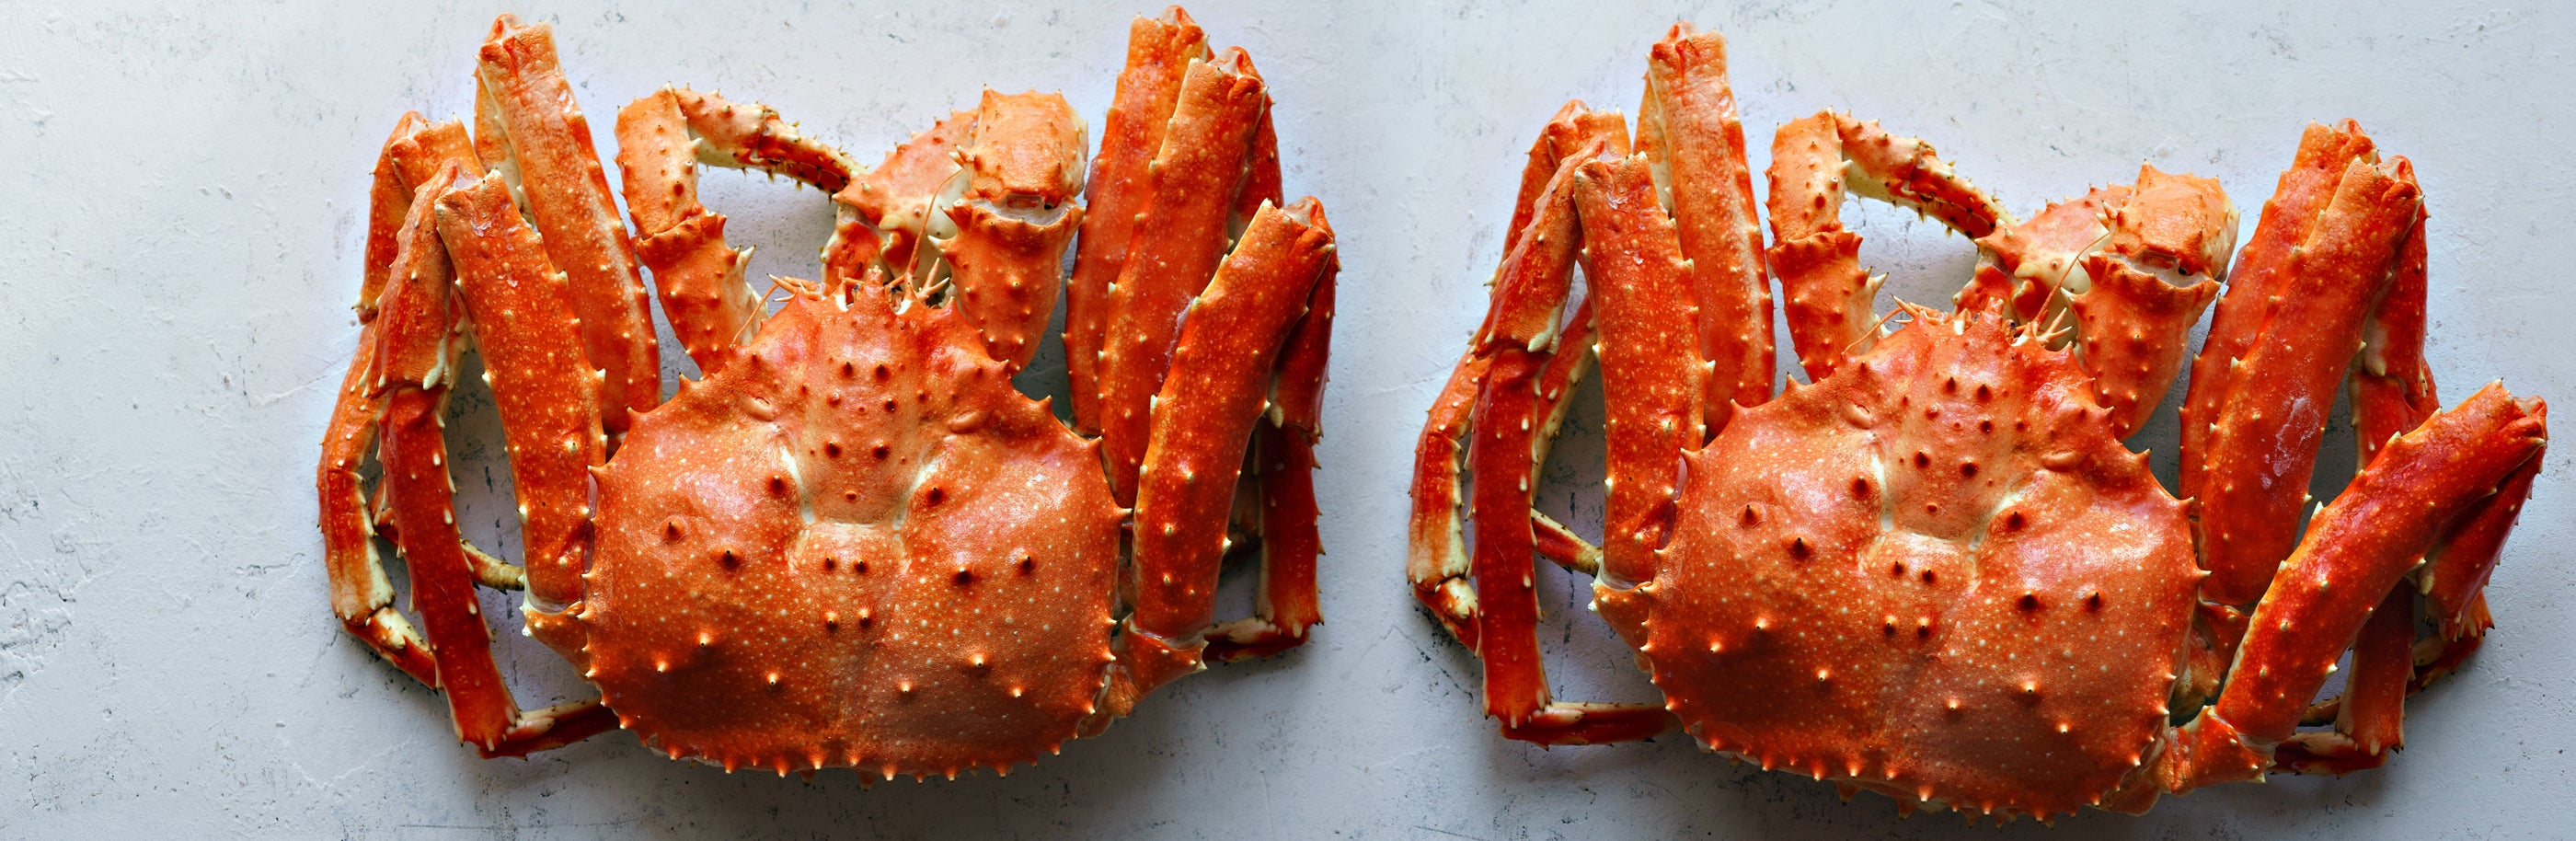 King Crab Sourcing